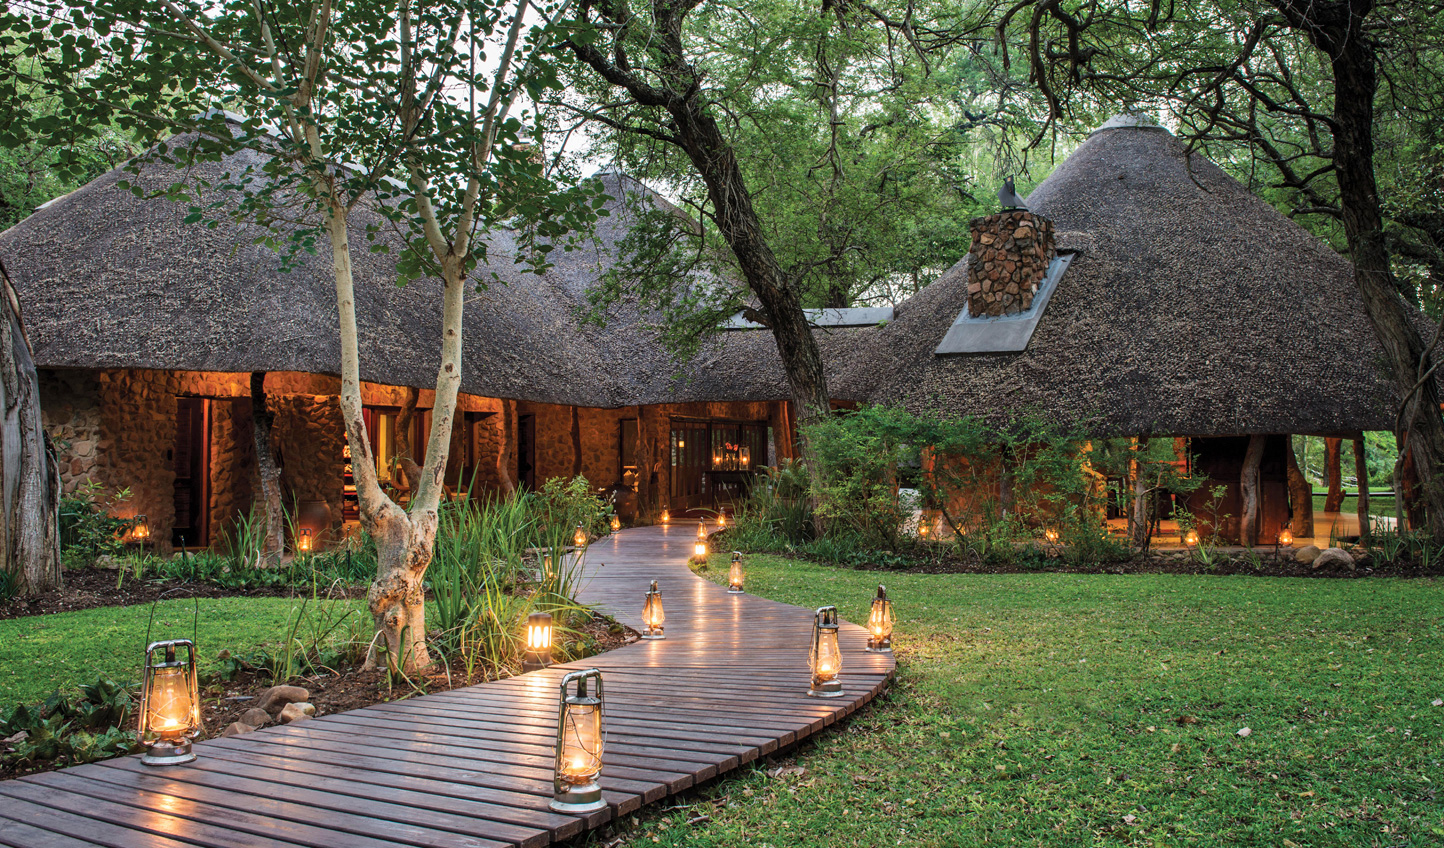 The entrance to Dulini Lodge